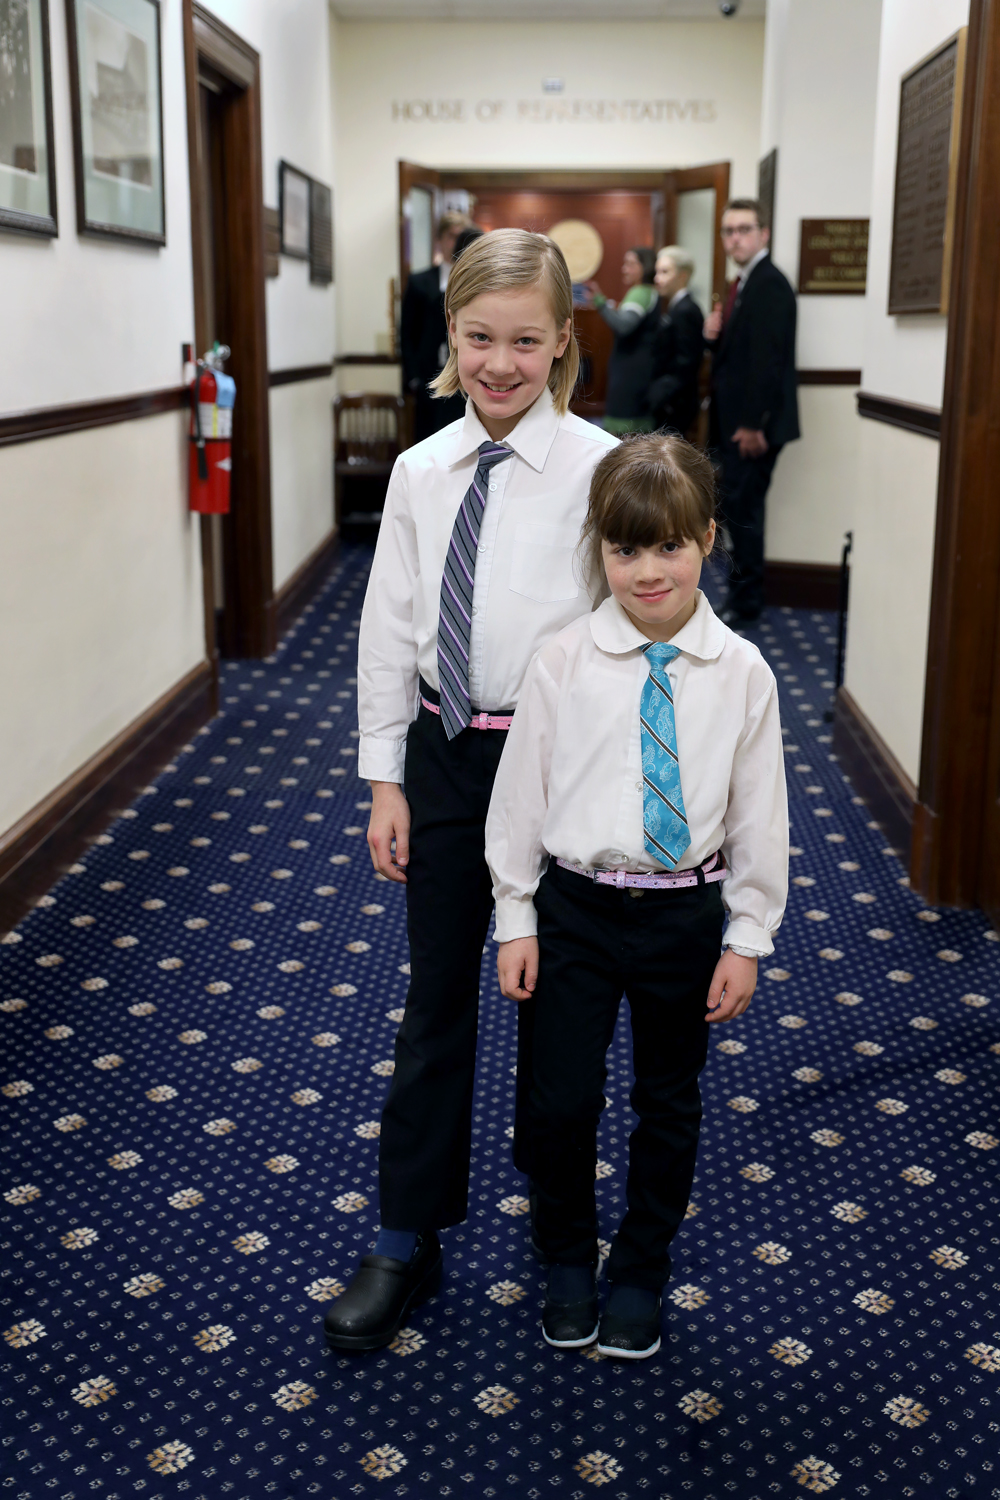 Evelyn (left) and Abby Wool, Guest Pages in the House of Representatives